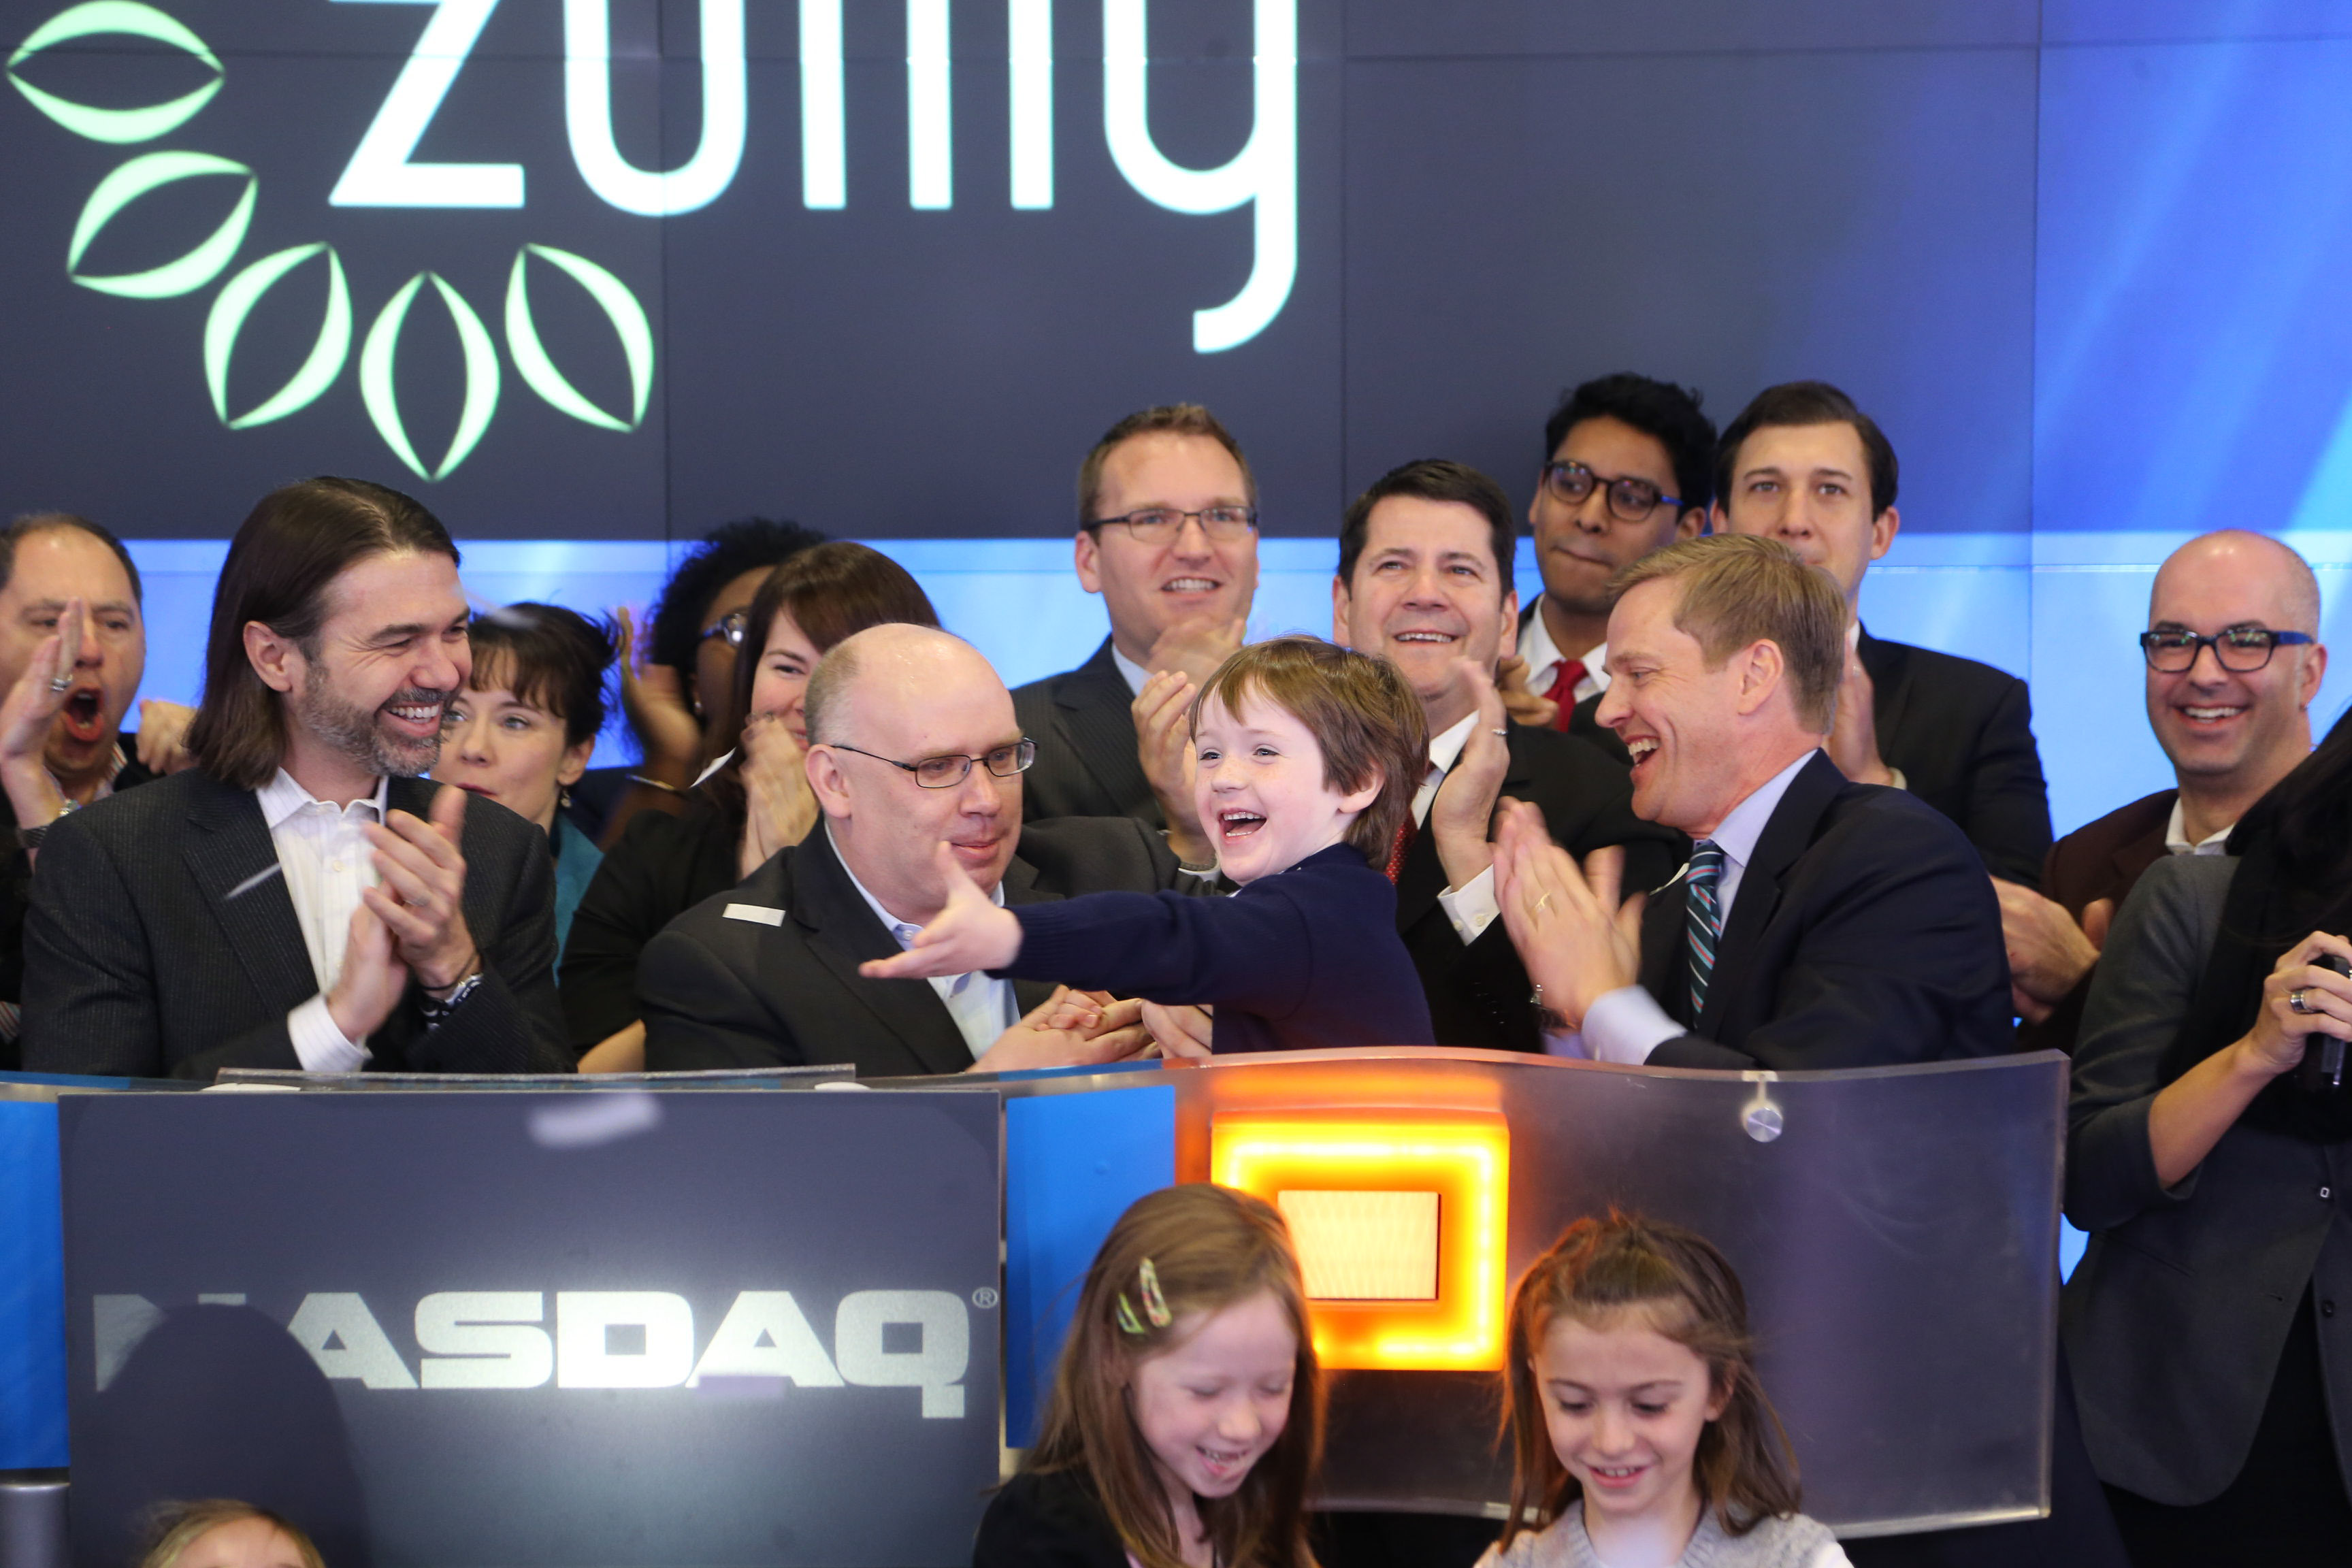 Photo of the day 5 year old son of darrell cavens introduces darrell cavens of zulily with his son and early employees opening trading on nasdaq this morning buycottarizona Image collections